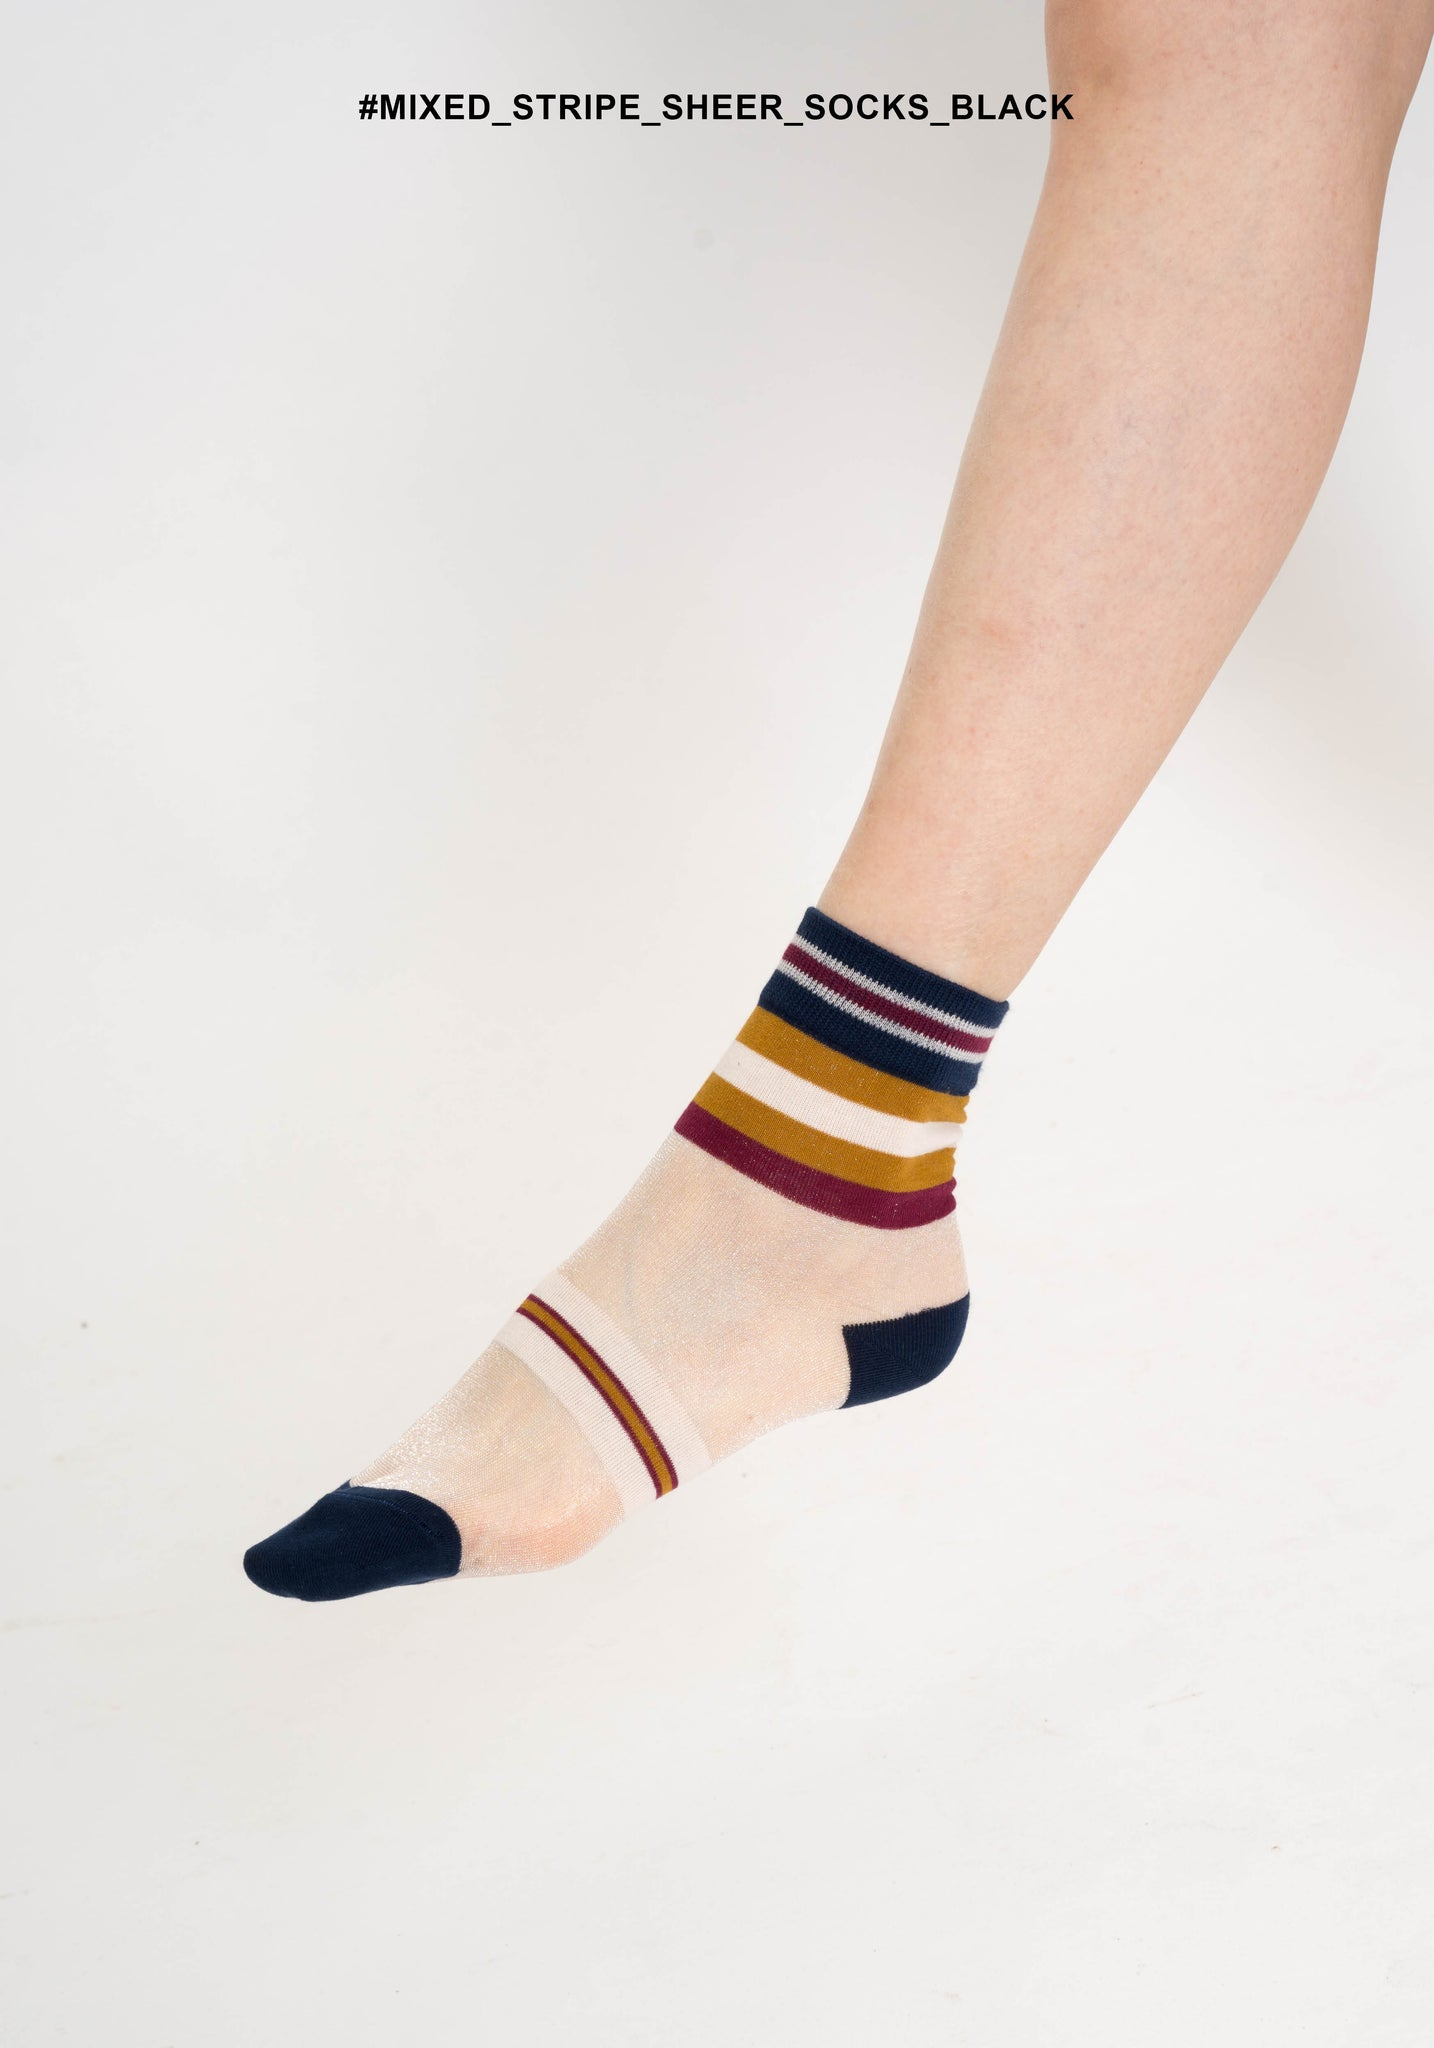 Mixed Stripe Sheer Socks Black - whoami